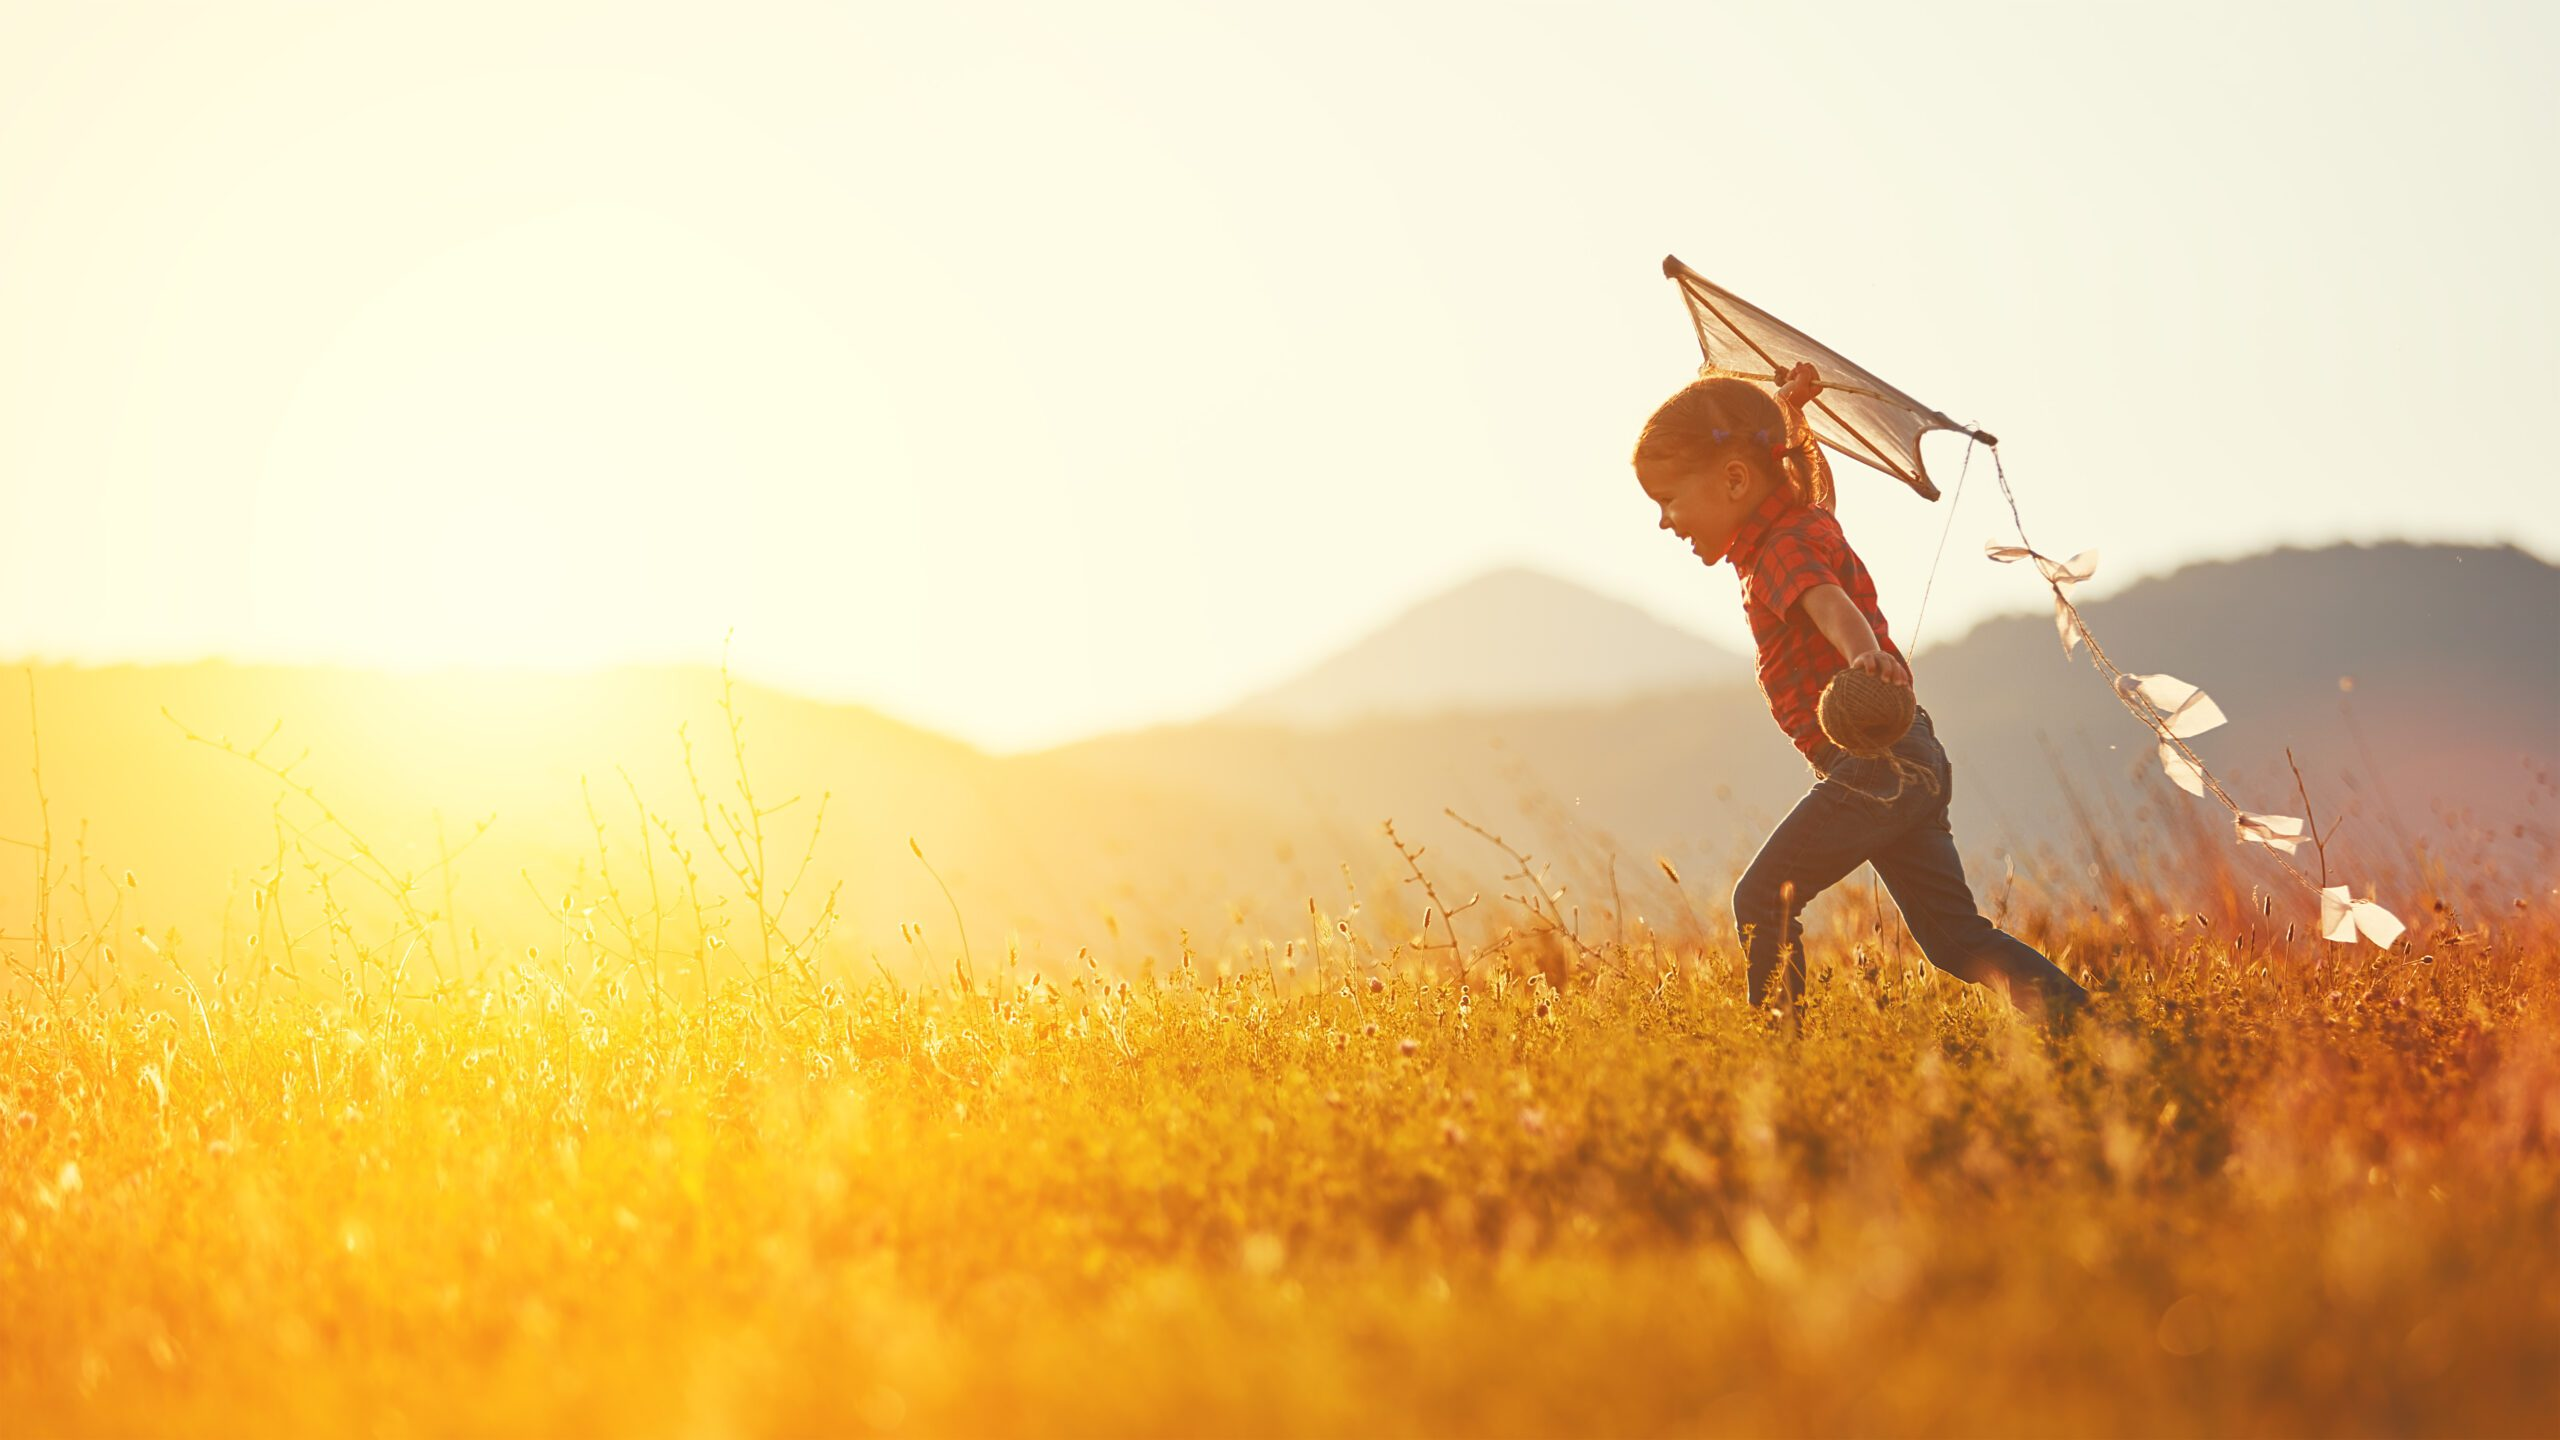 independent child flying a kite